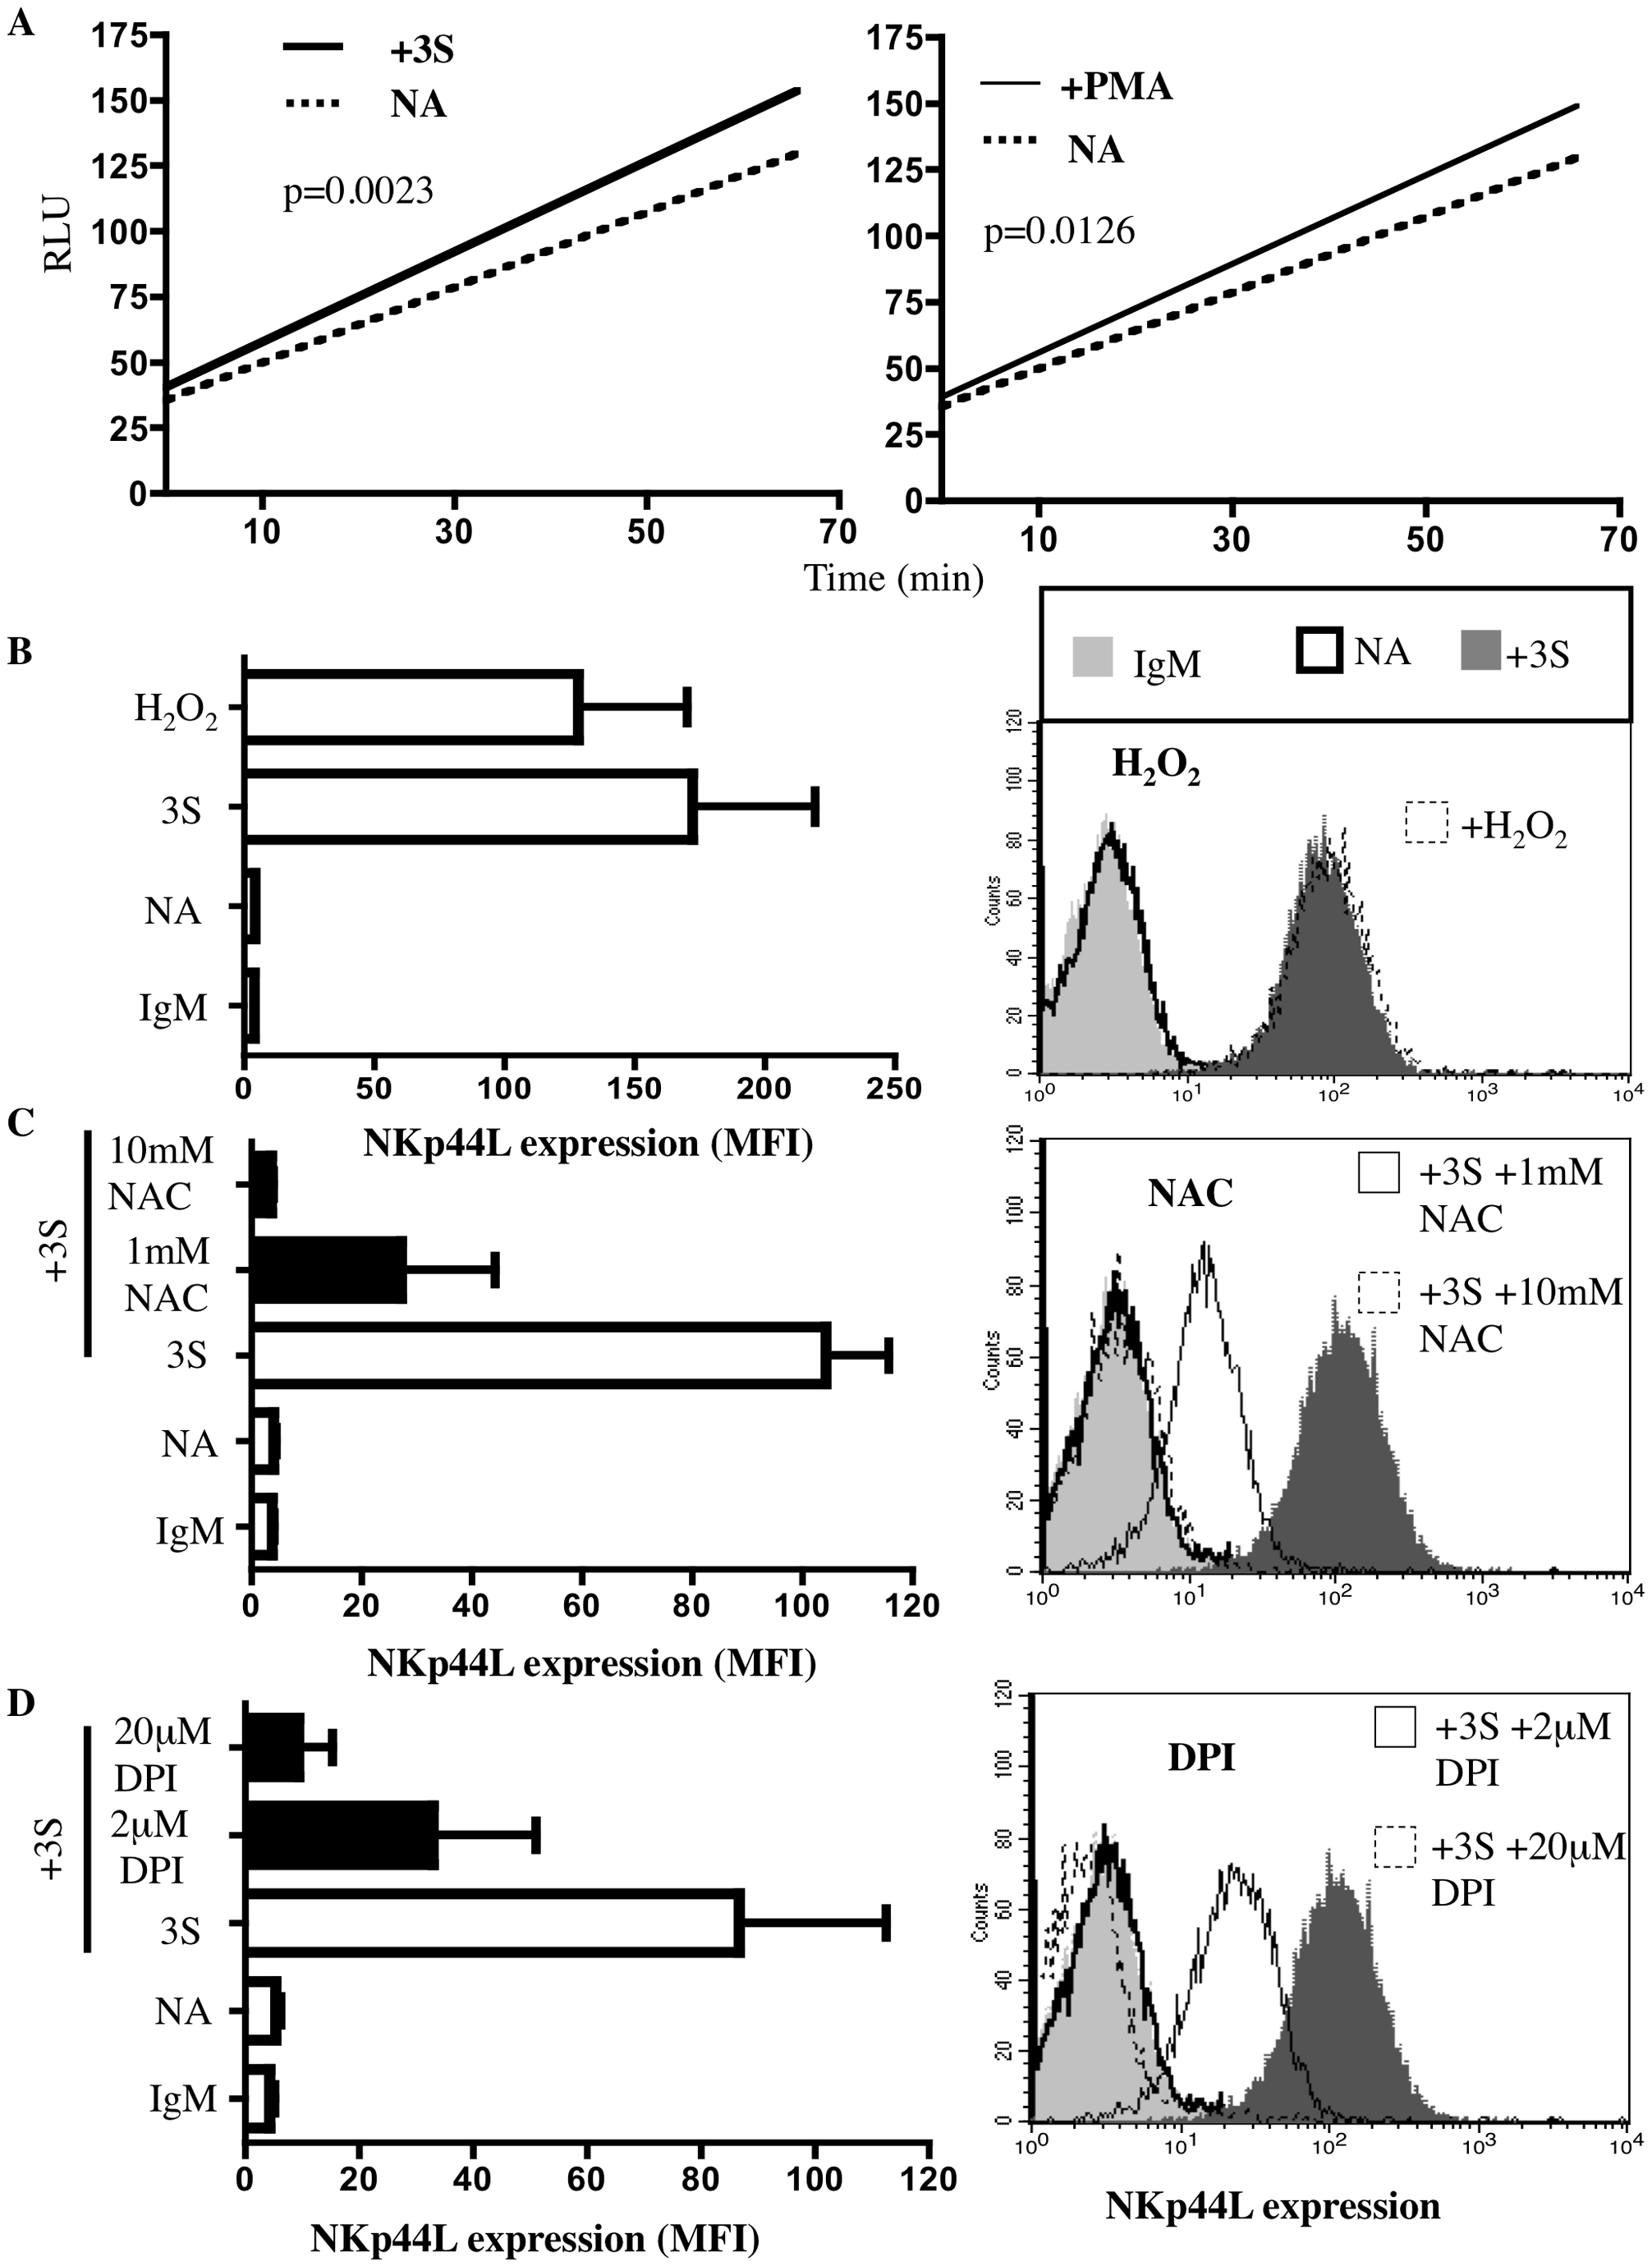 3S peptide stimulation induces ROS production by NADPH oxidase.